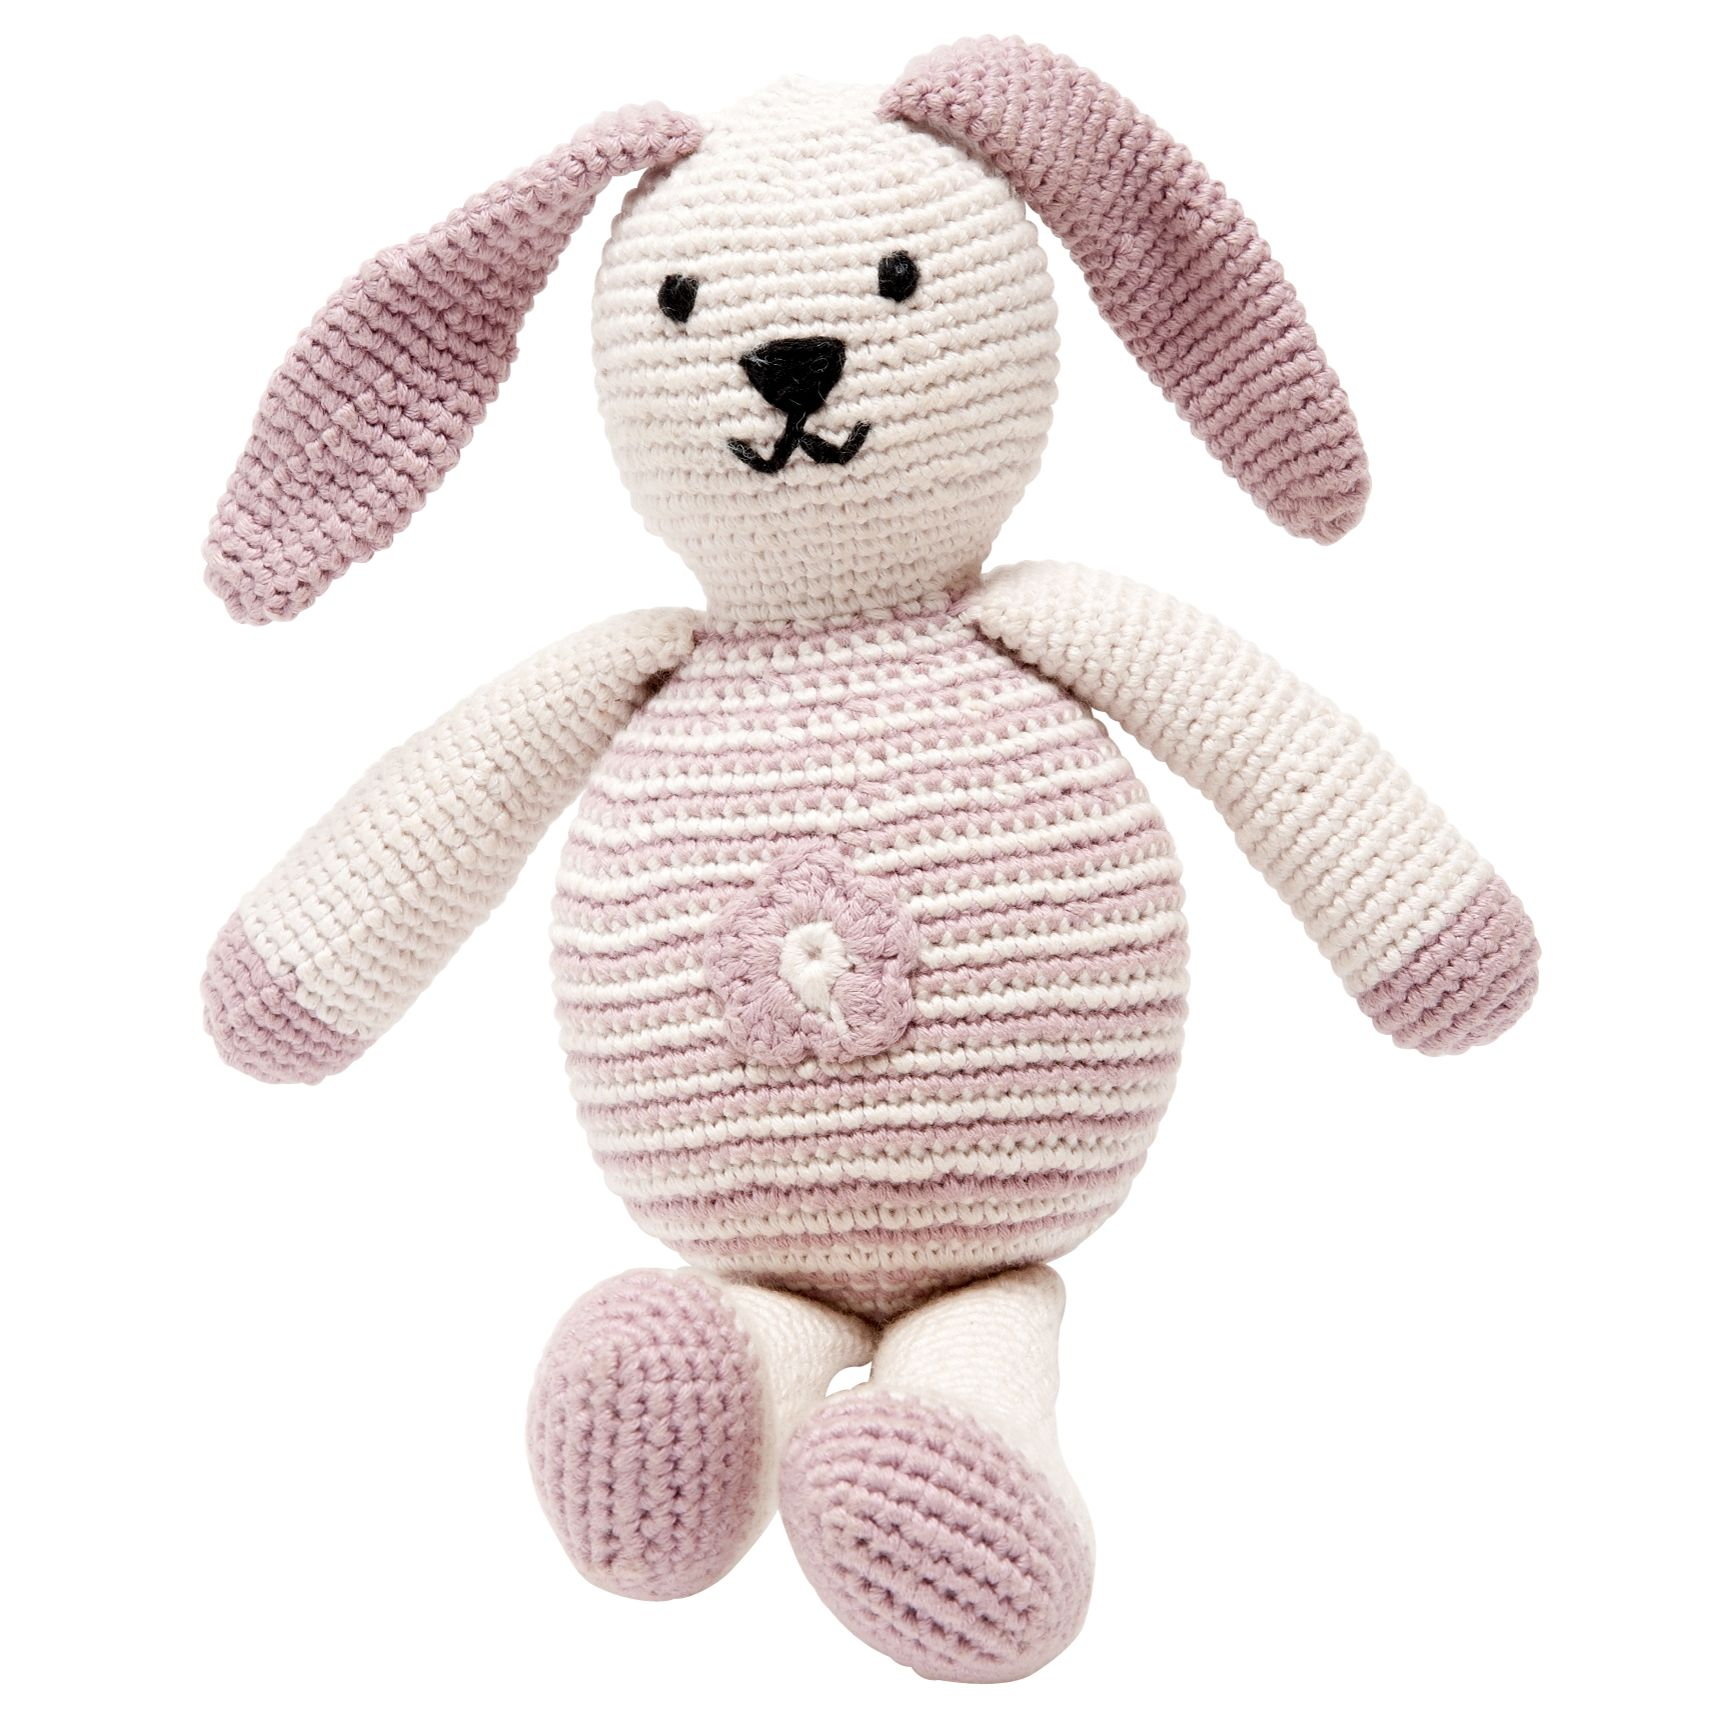 Pebble Fair Trade Organic Cotton Bunny, Pink